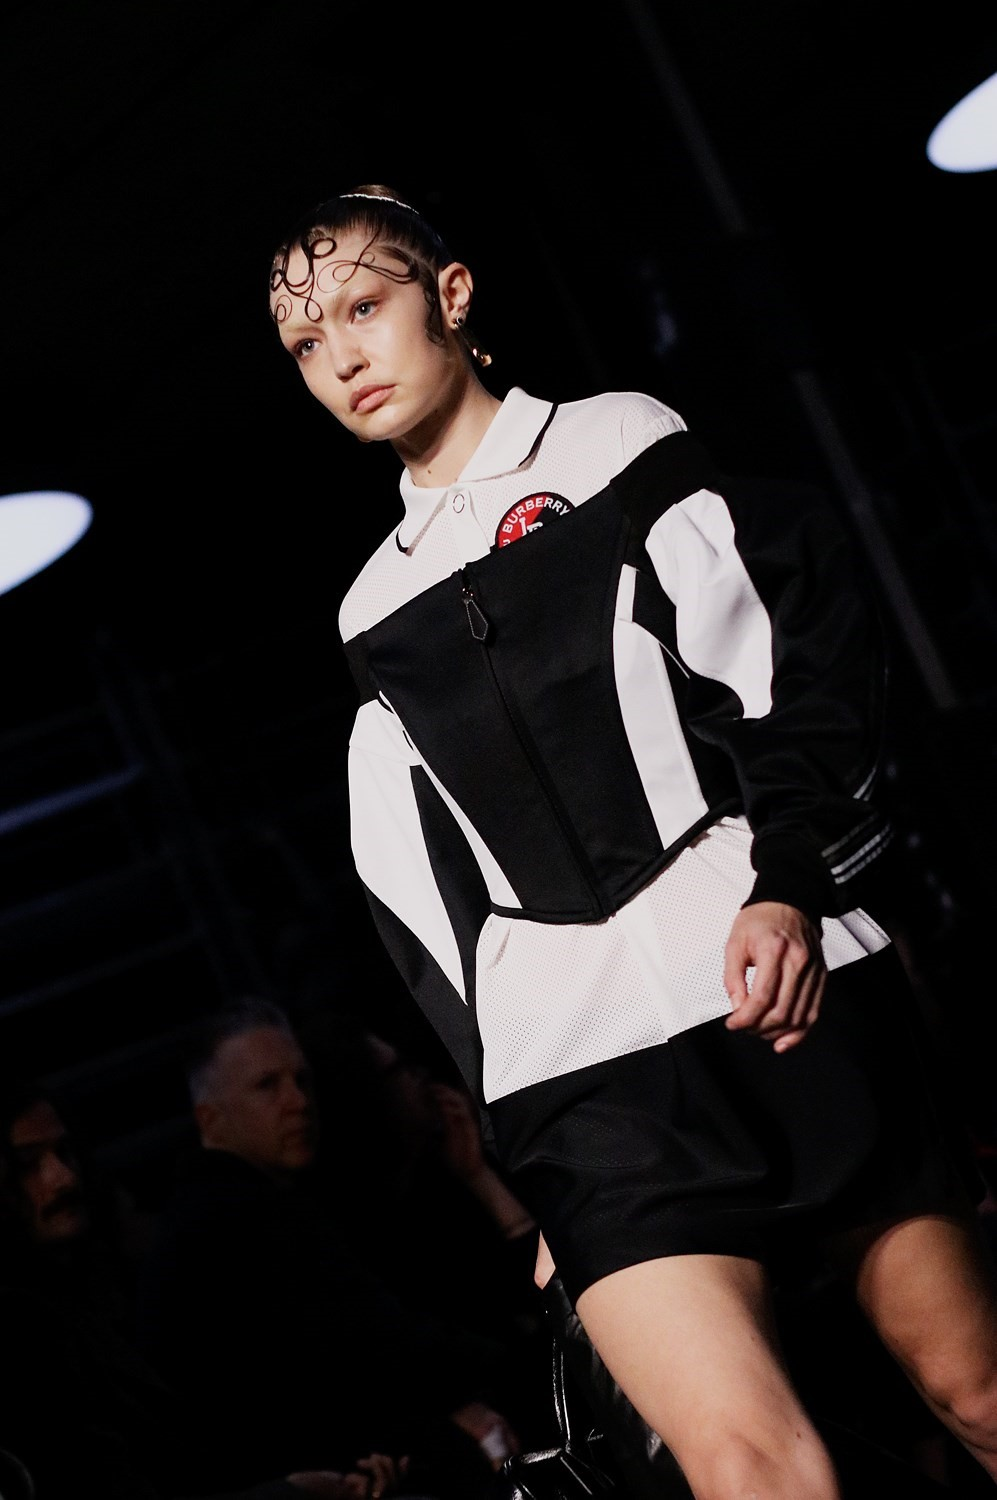 db132e6b170d Riccardo Tisci s second Burberry show was a tribute to youth